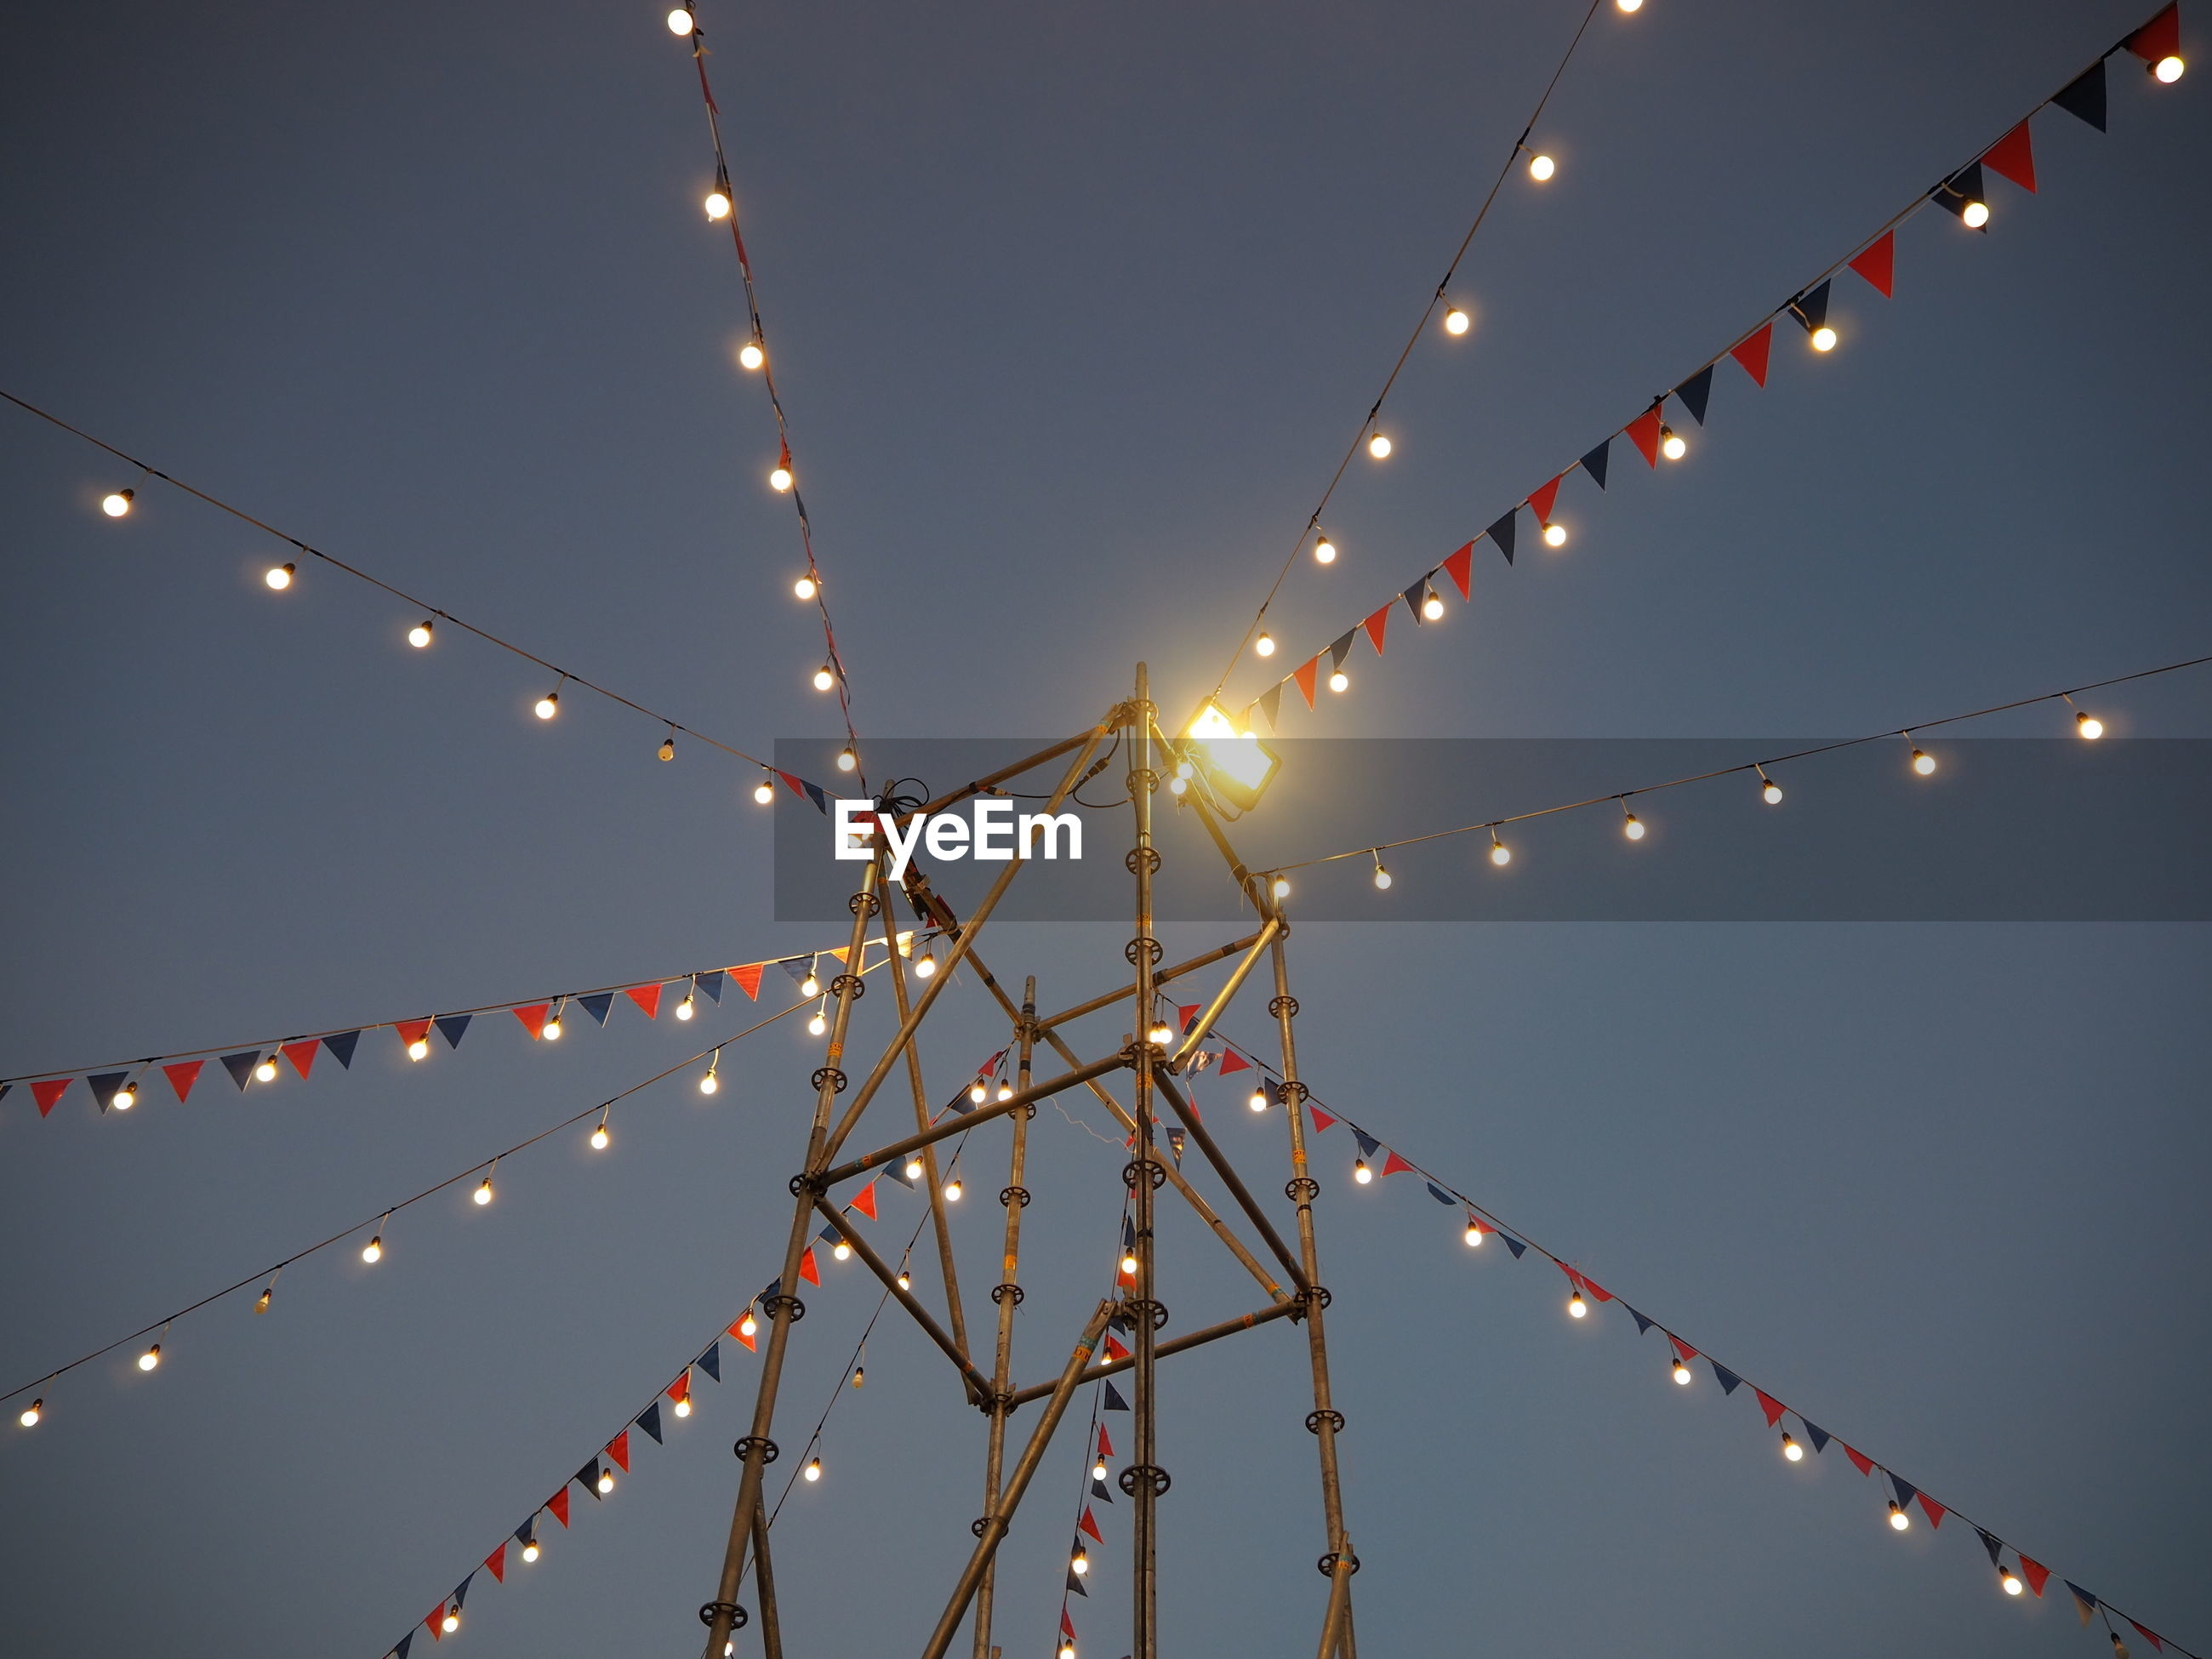 Low angle view of illuminated lighting equipment and buntings hanging against sky at dusk